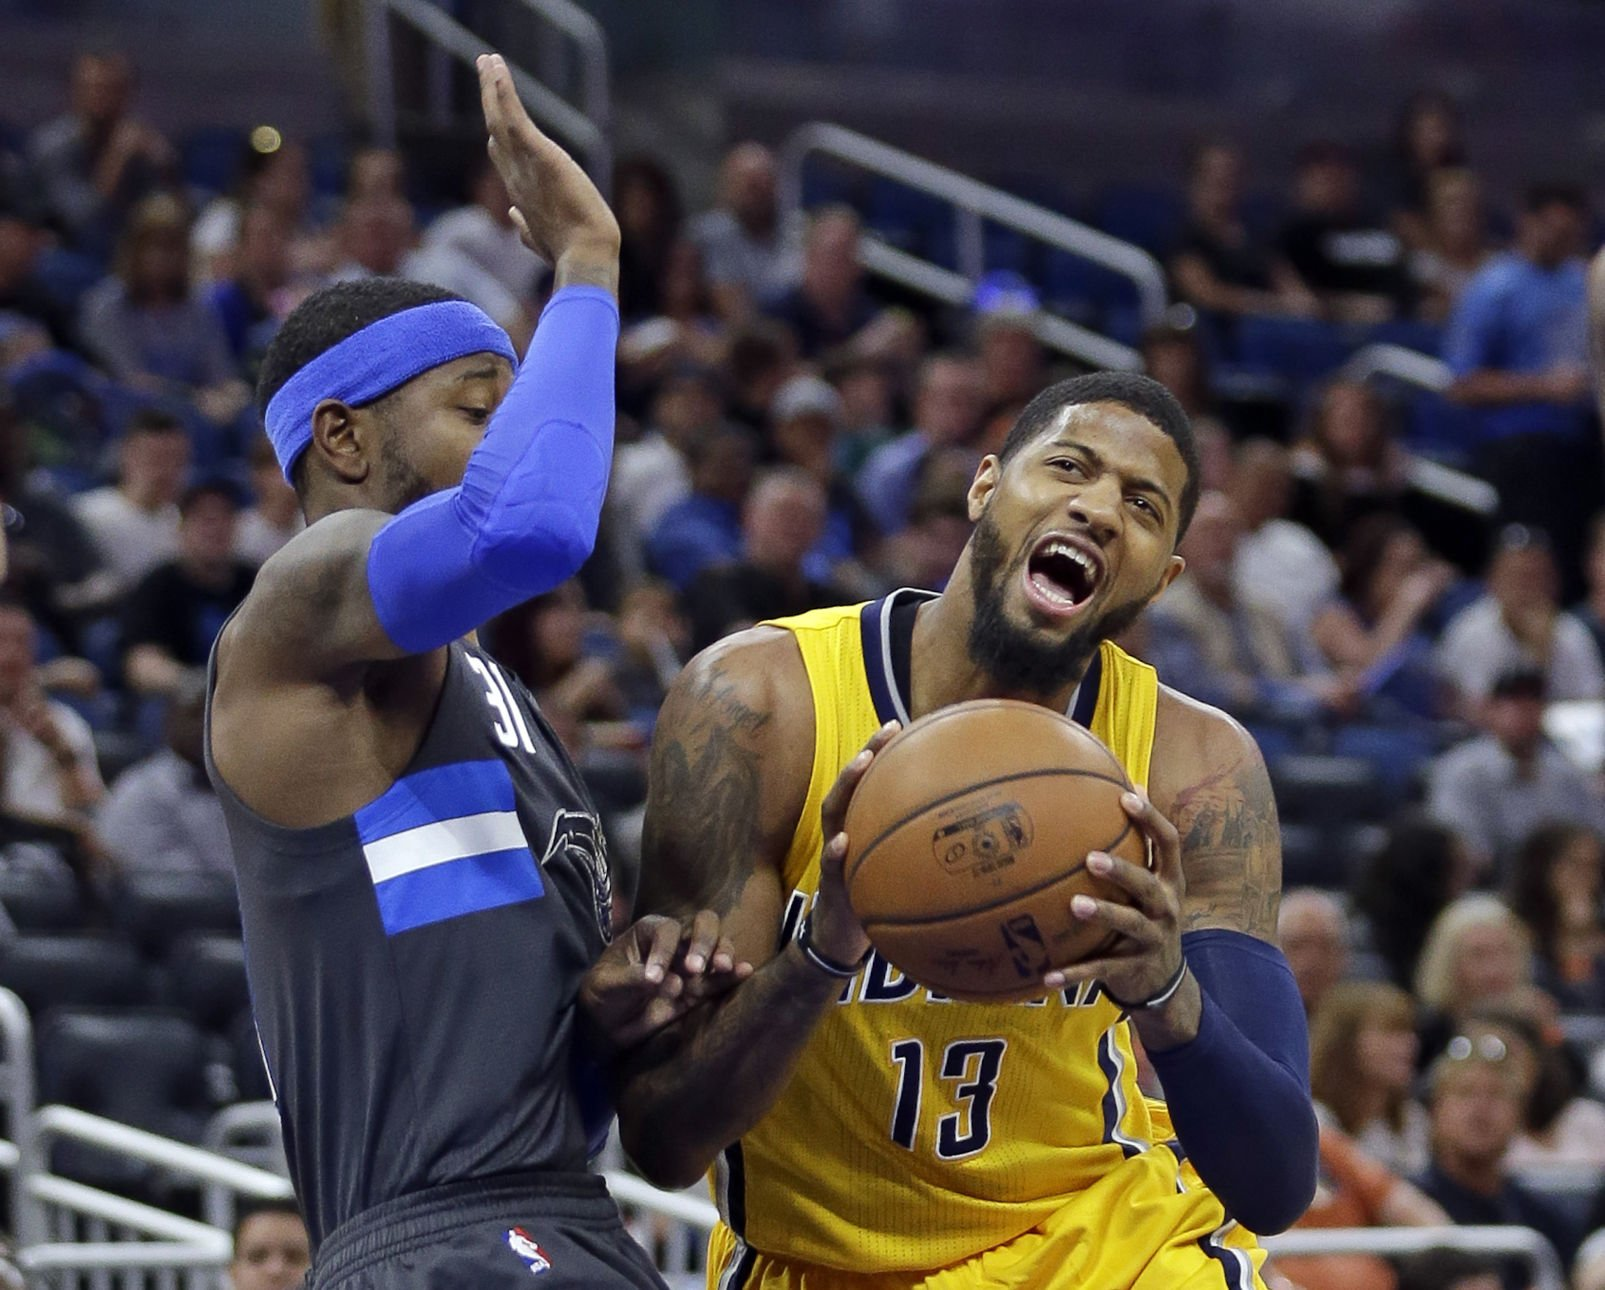 Pacers reportedly file tampering charges against Lakers for contact with Paul George